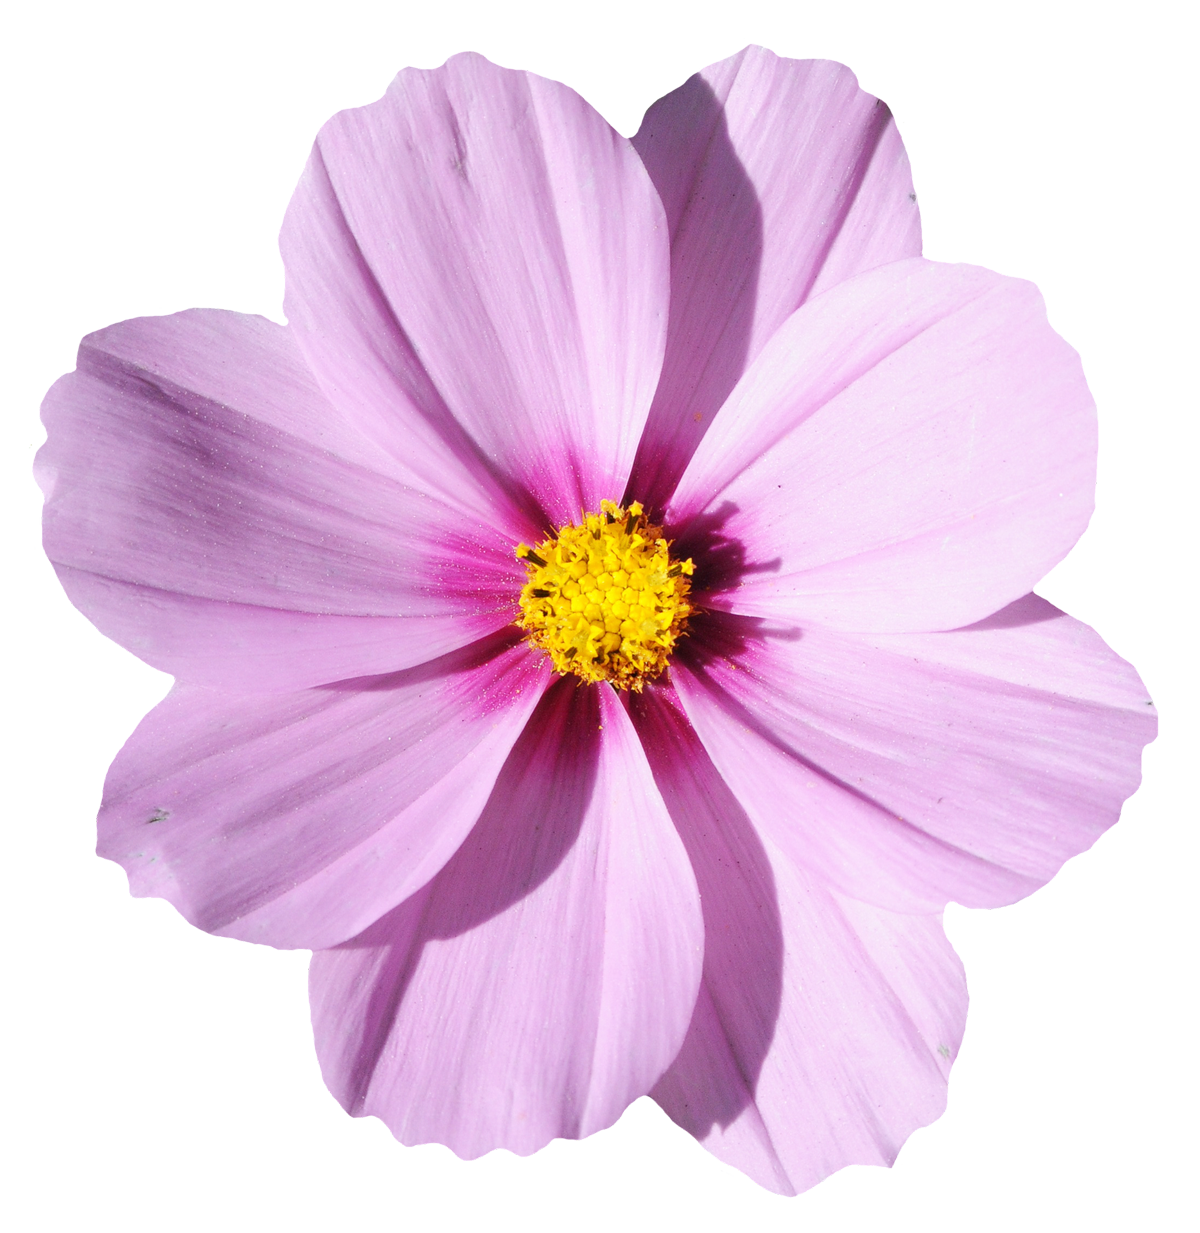 blossom flower transparent image #8177